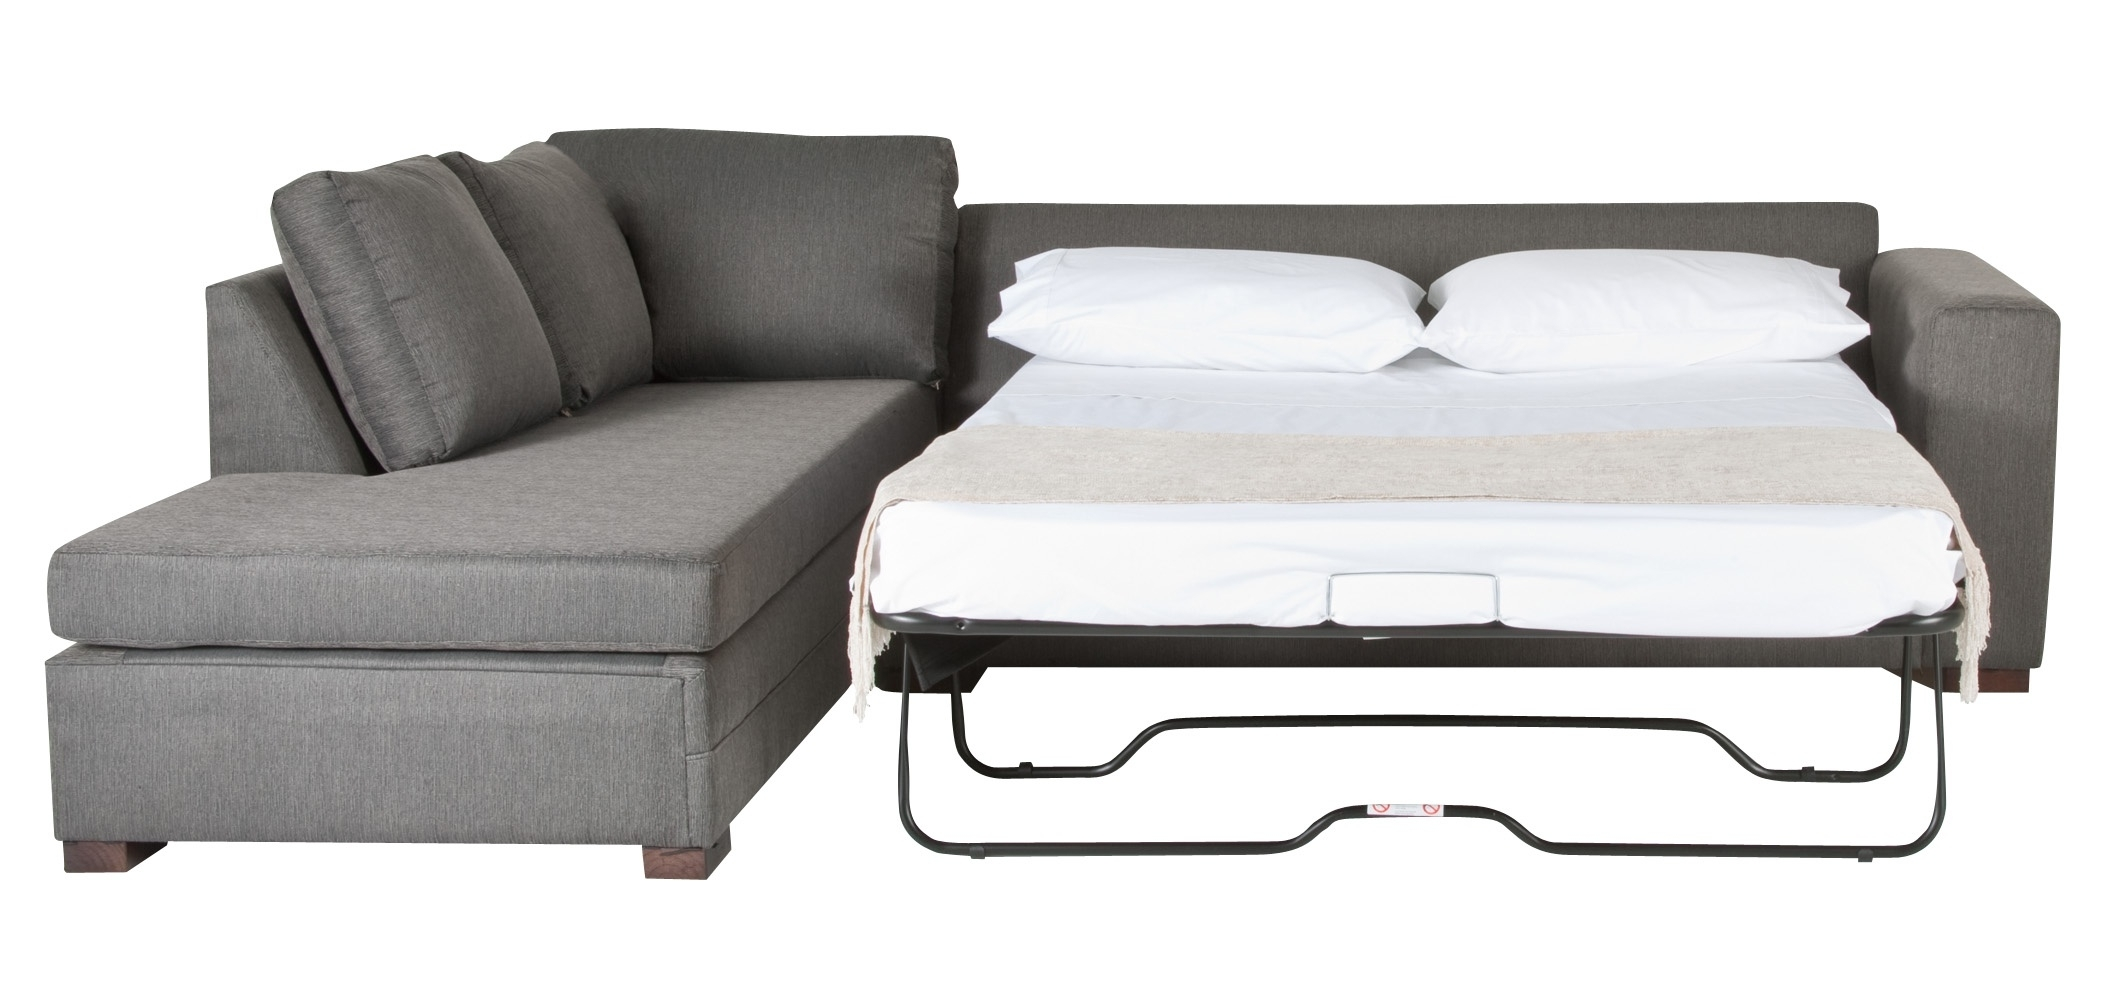 Sofa Sleeper For Sale – 100 Images – Loveseat Sofa Sleepers Sofa In Ikea Sectional Sleeper Sofas (View 10 of 10)